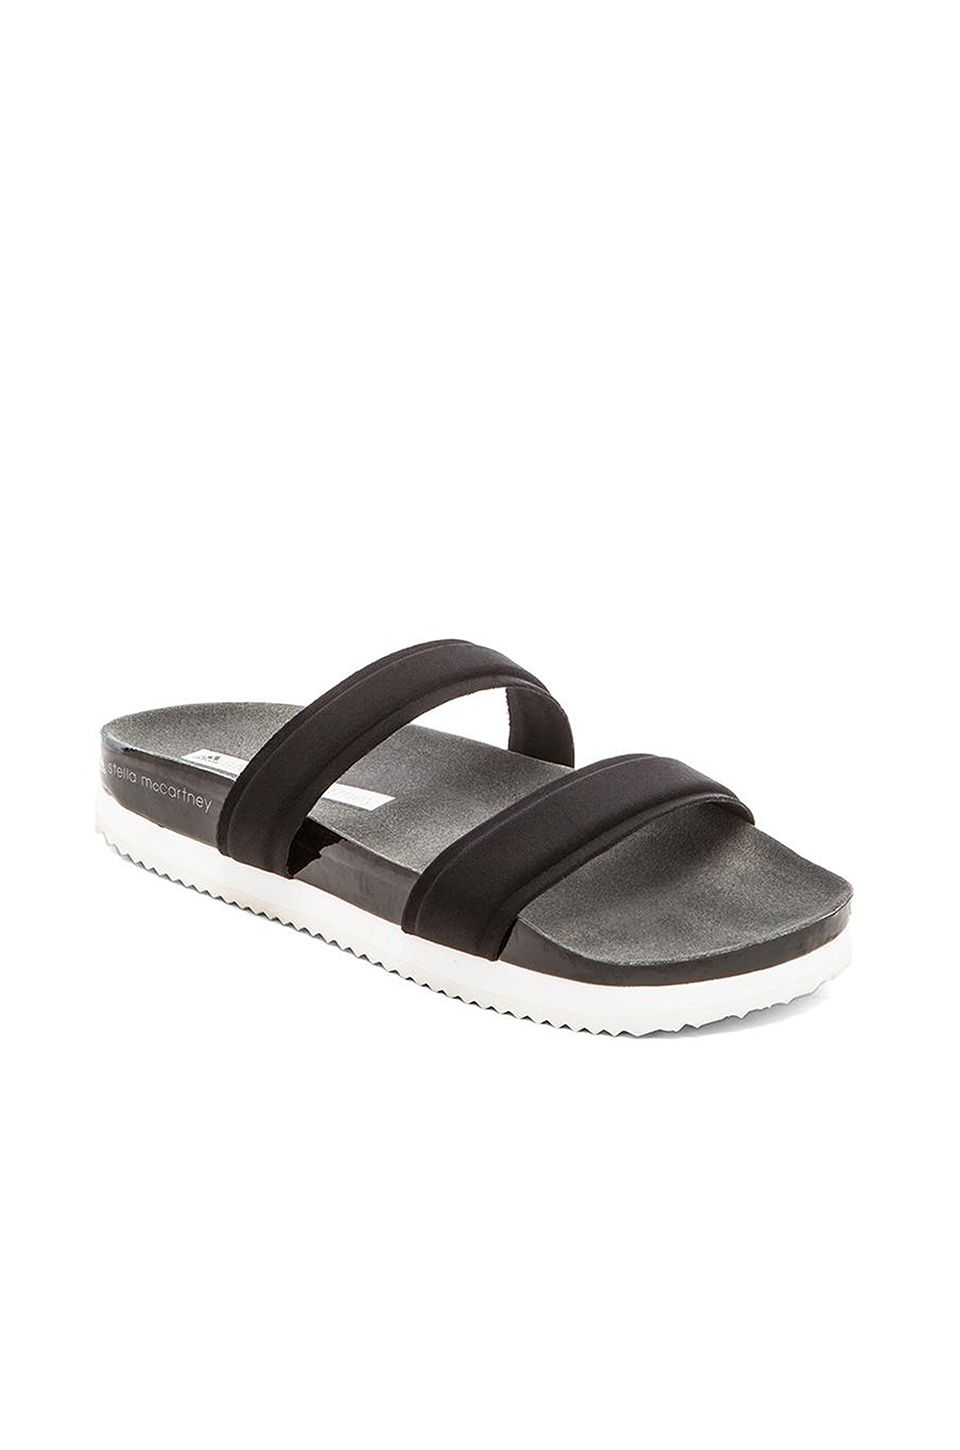 Stella McCartney Women's Slide Sandal ewILBu